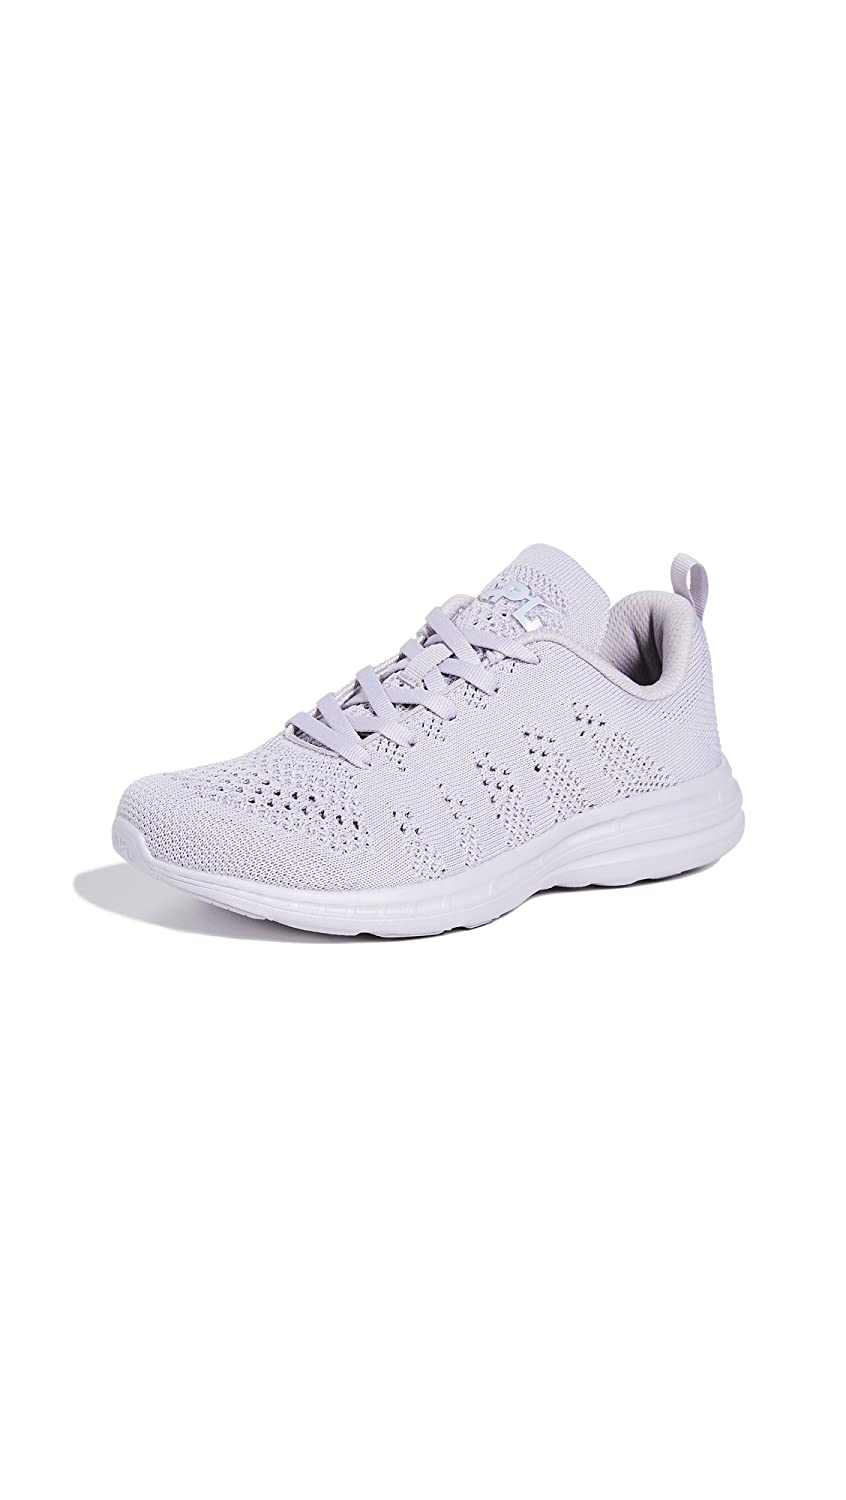 APL: Athletic Propulsion Labs Women's Techloom Pro Sneakers B07FF25JK6 6 B(M) US|Raindrop